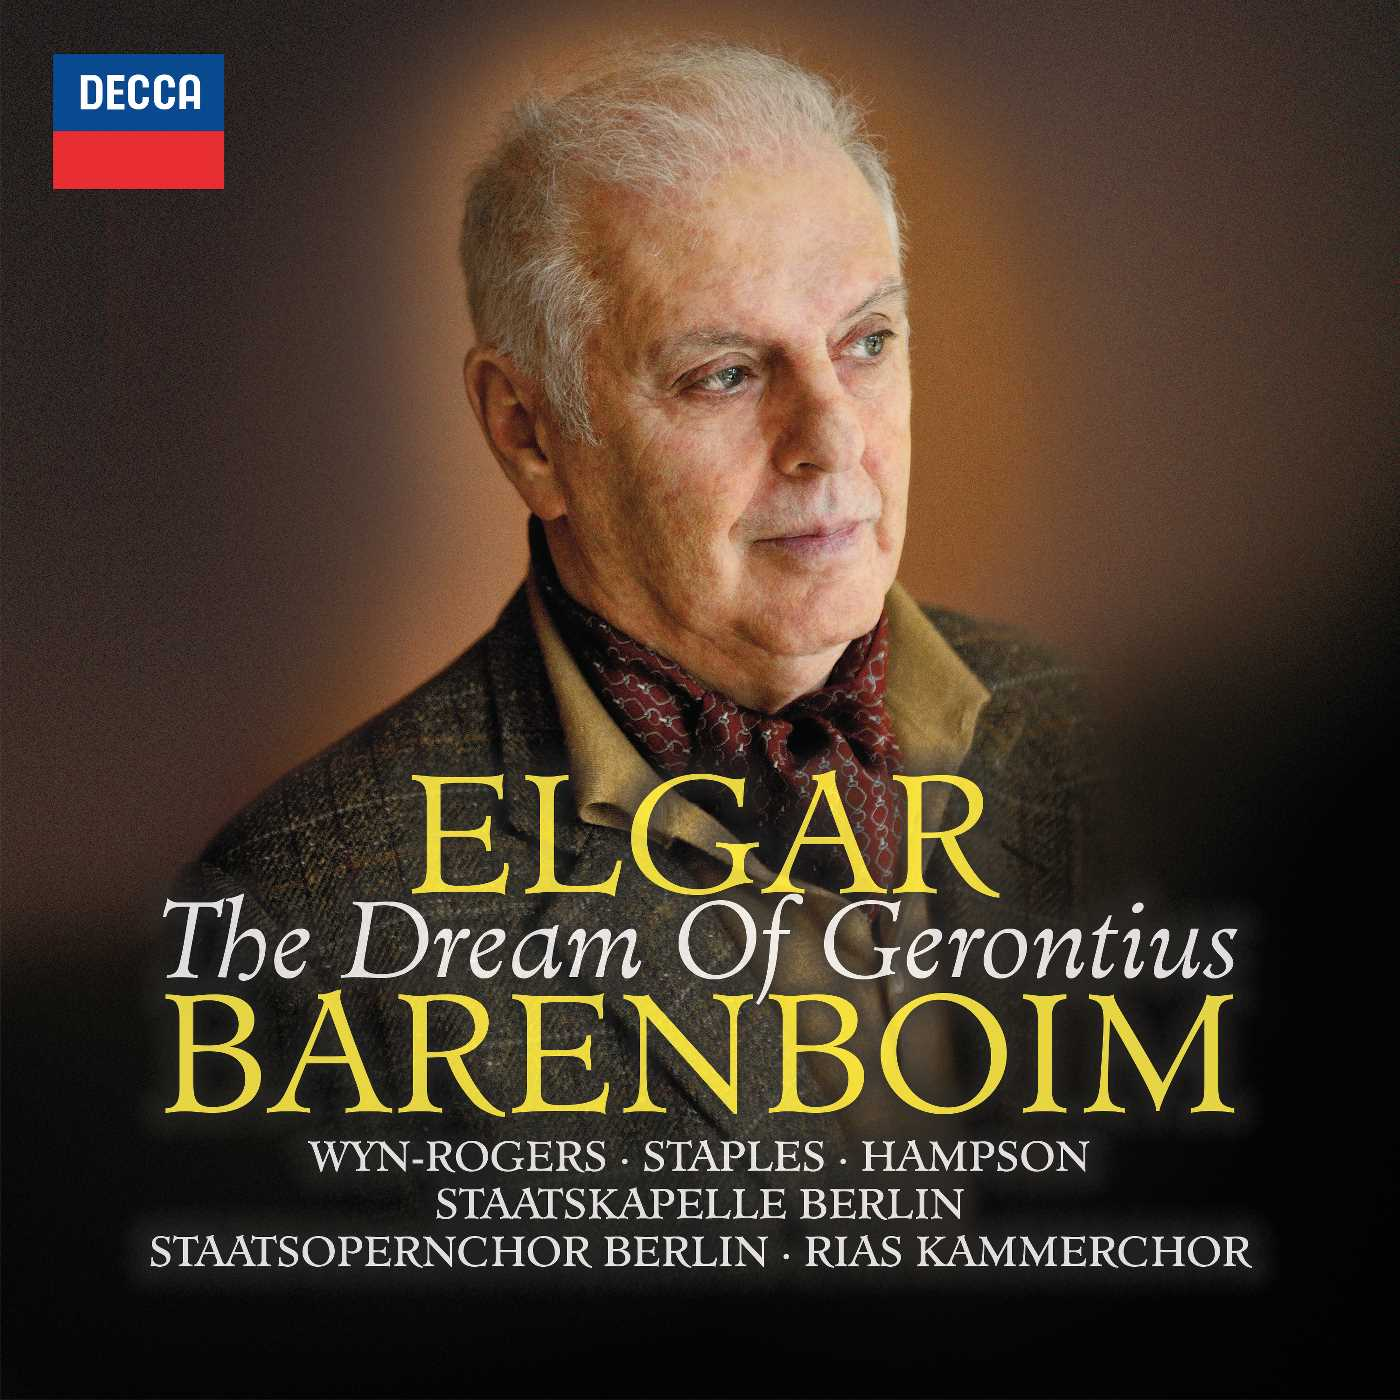 CD REVIEW: Sir Edward Elgar - THE DREAM OF GERONTIUS (DECCA 483 1585)